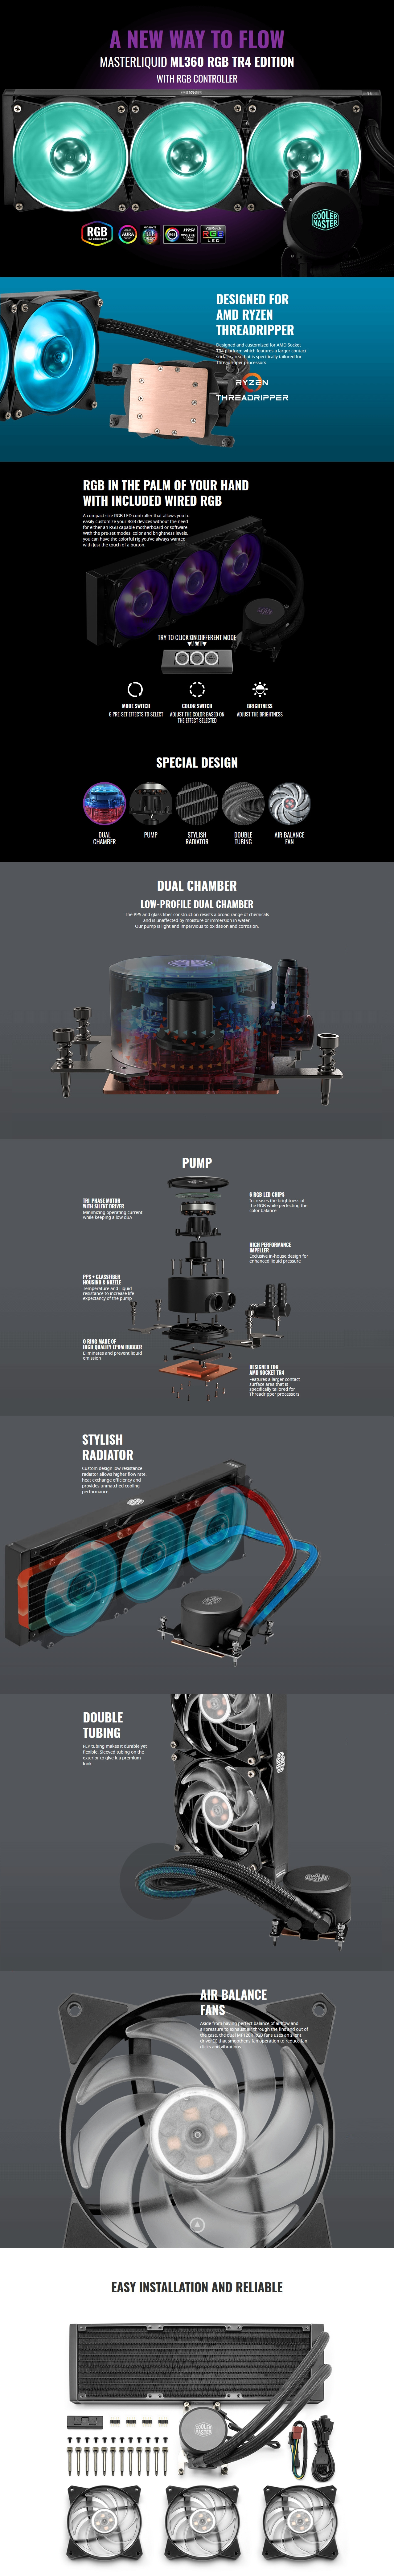 A large marketing image providing additional information about the product Cooler Master MasterLiquid ML360 RGB TR4 Edition AIO Liquid CPU Cooler - Additional alt info not provided